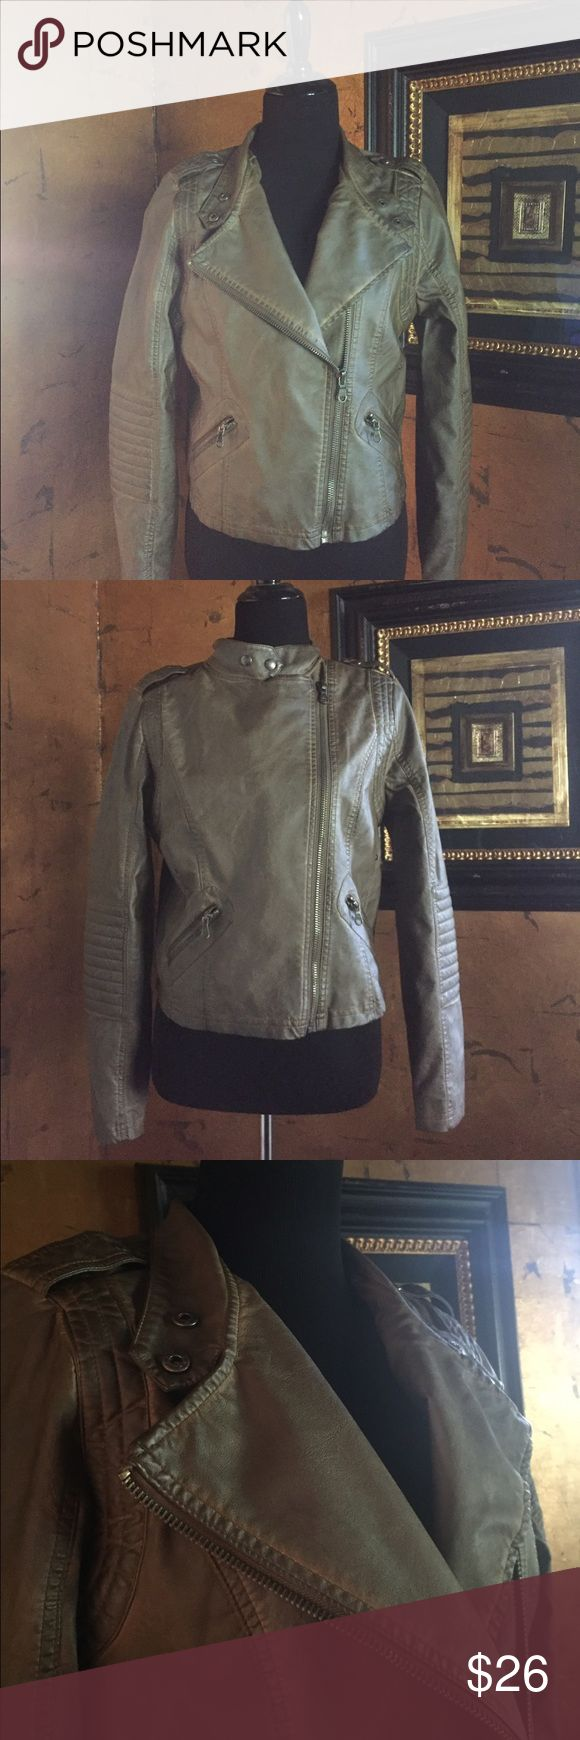 Faux Leather Bomber Jacket This brand new, never been worn, faux leather jacket with tags still attached, has impeccable style.  The jacket is designed by Black Swan. Color is a greenish tan. Front zipper than can be unzipped, partially zipped, or zipped to the top. There are 2 small zipper pockets in front and stitching on the elbows and back of the jacket which make this jacket completely out of the ordinary. Pair this jacket with jeans or throw it over a little black dress or black mini…